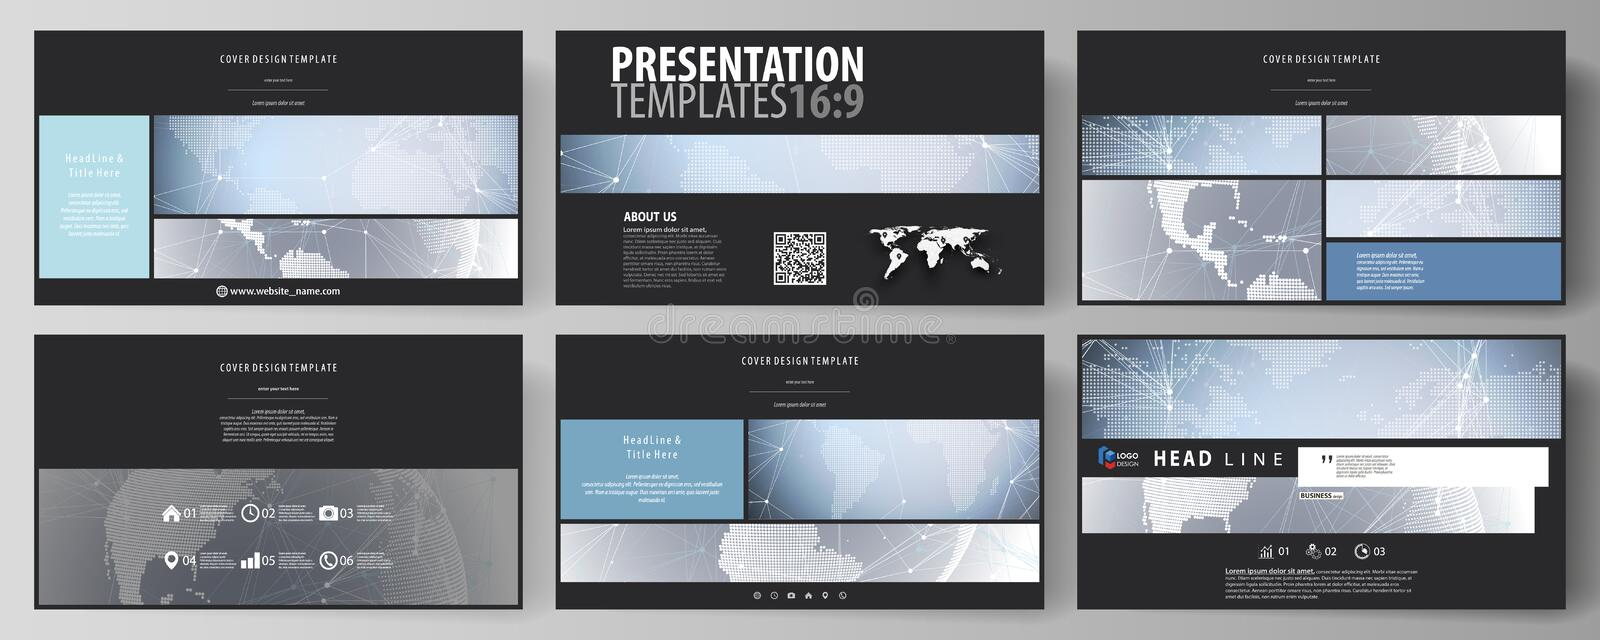 The black colored minimalistic vector illustration of the editable layout of high definition presentation slides design stock illustration